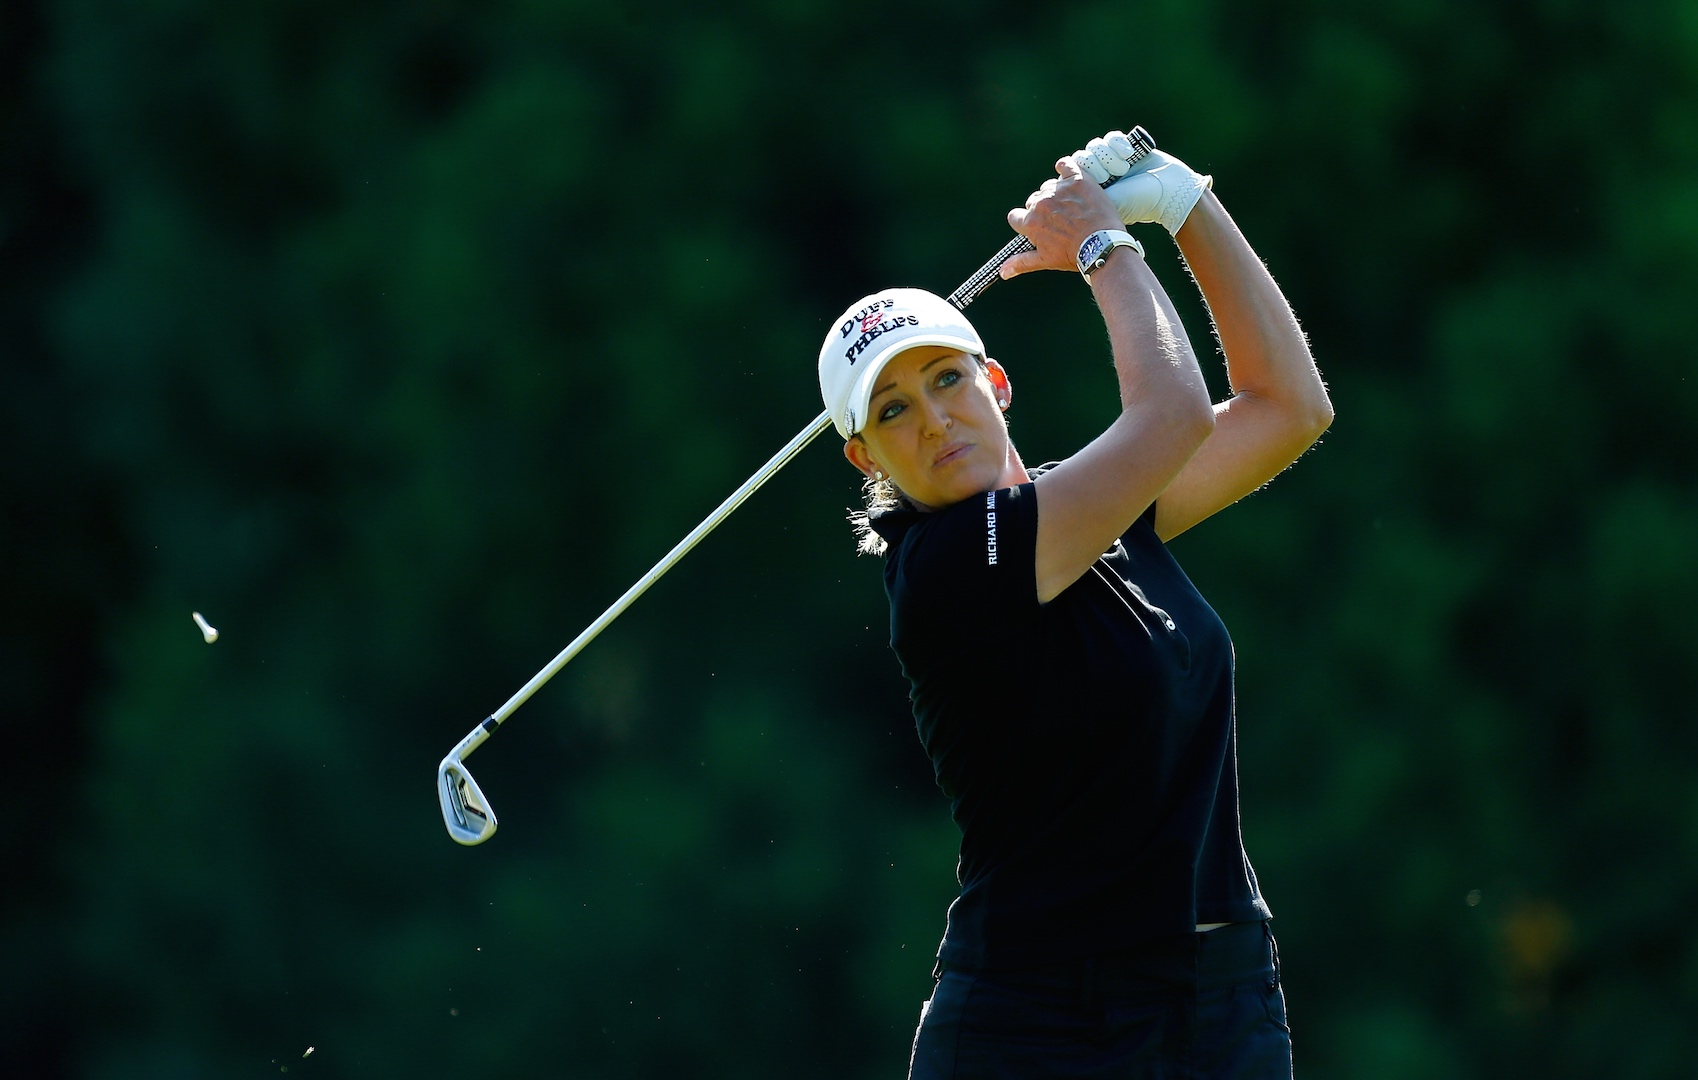 Pedersen leads, Cristie Kerr Goes Low, GolfPunks going well...